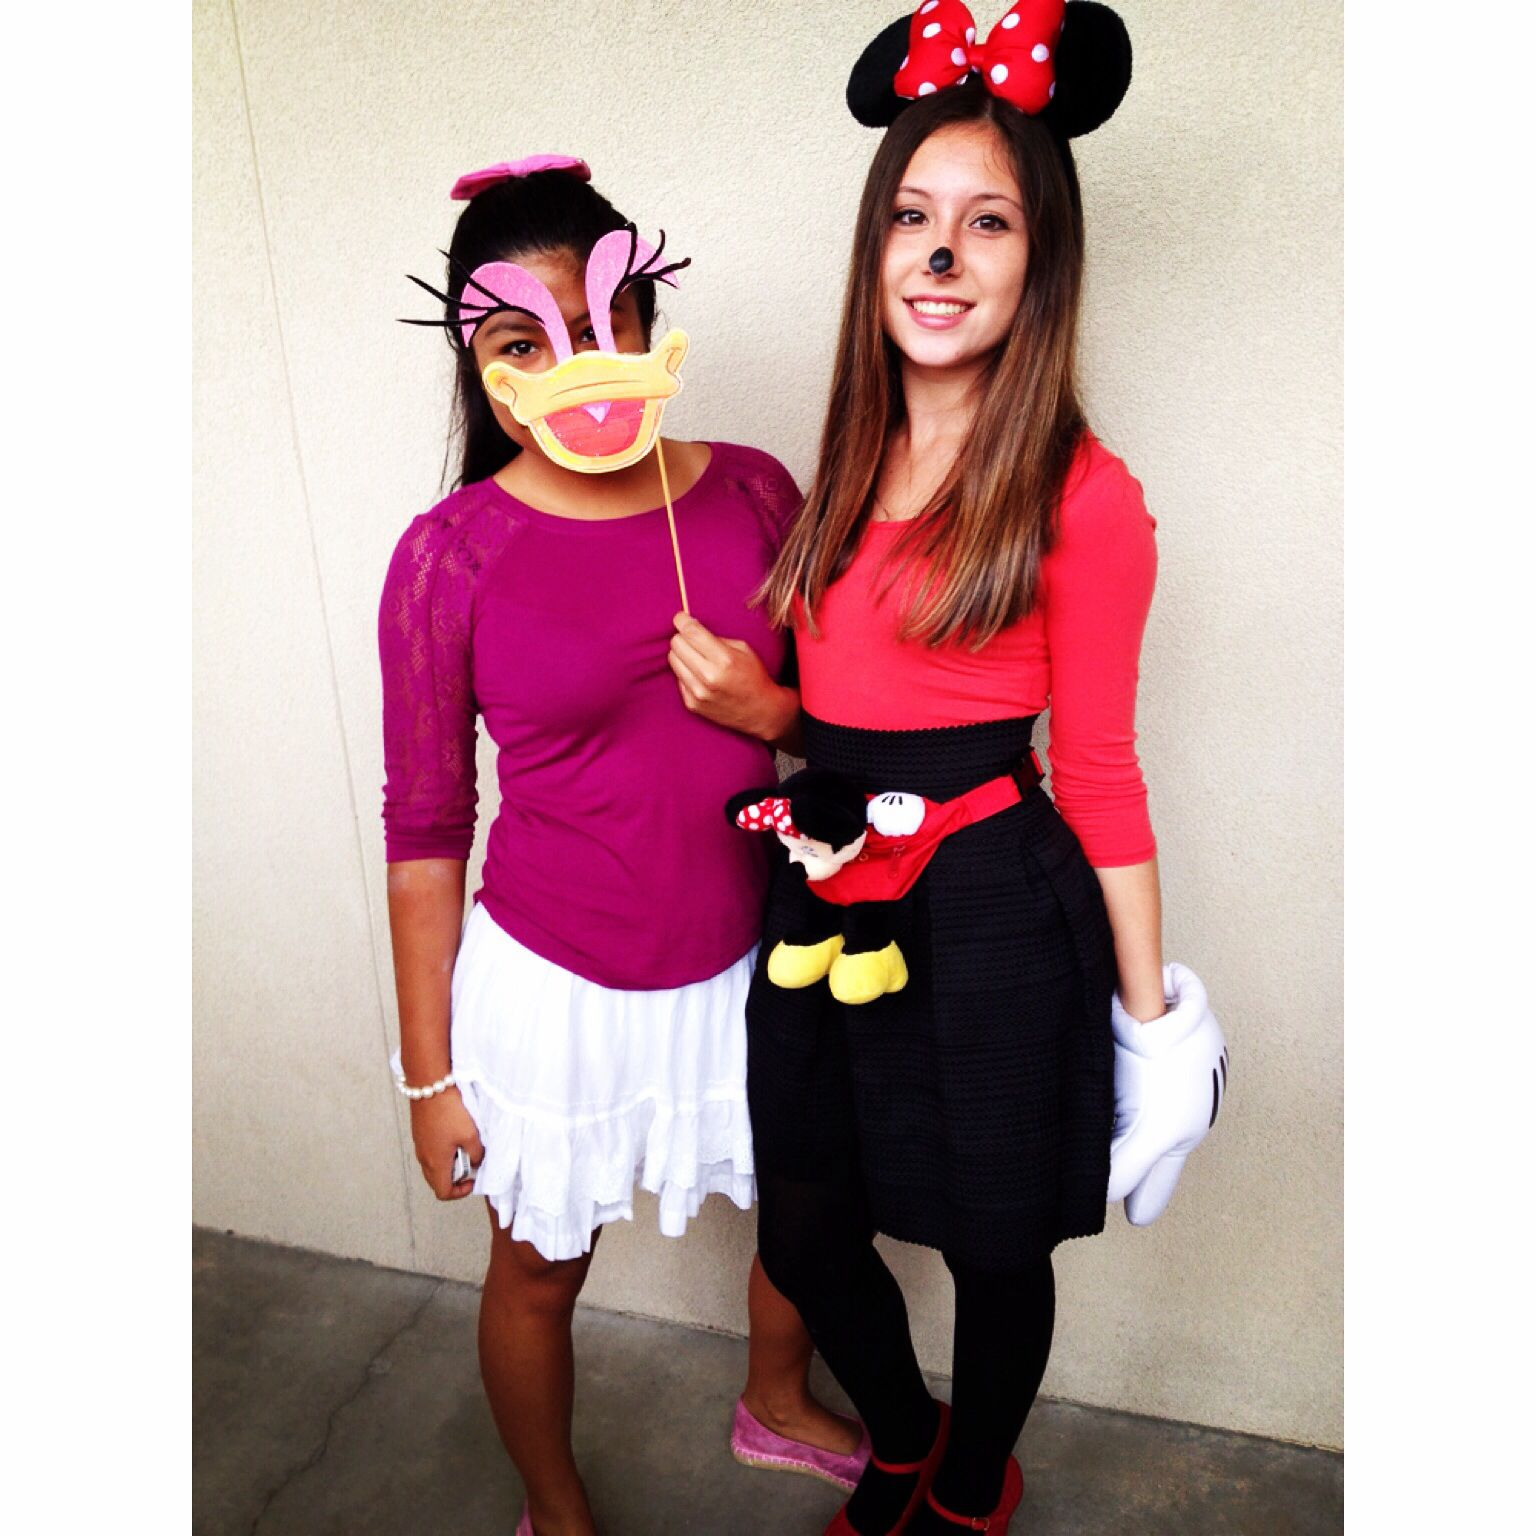 Disney Costume Ideas Homecoming Character Day Idea Minniemouse Daisyduck Homecoming